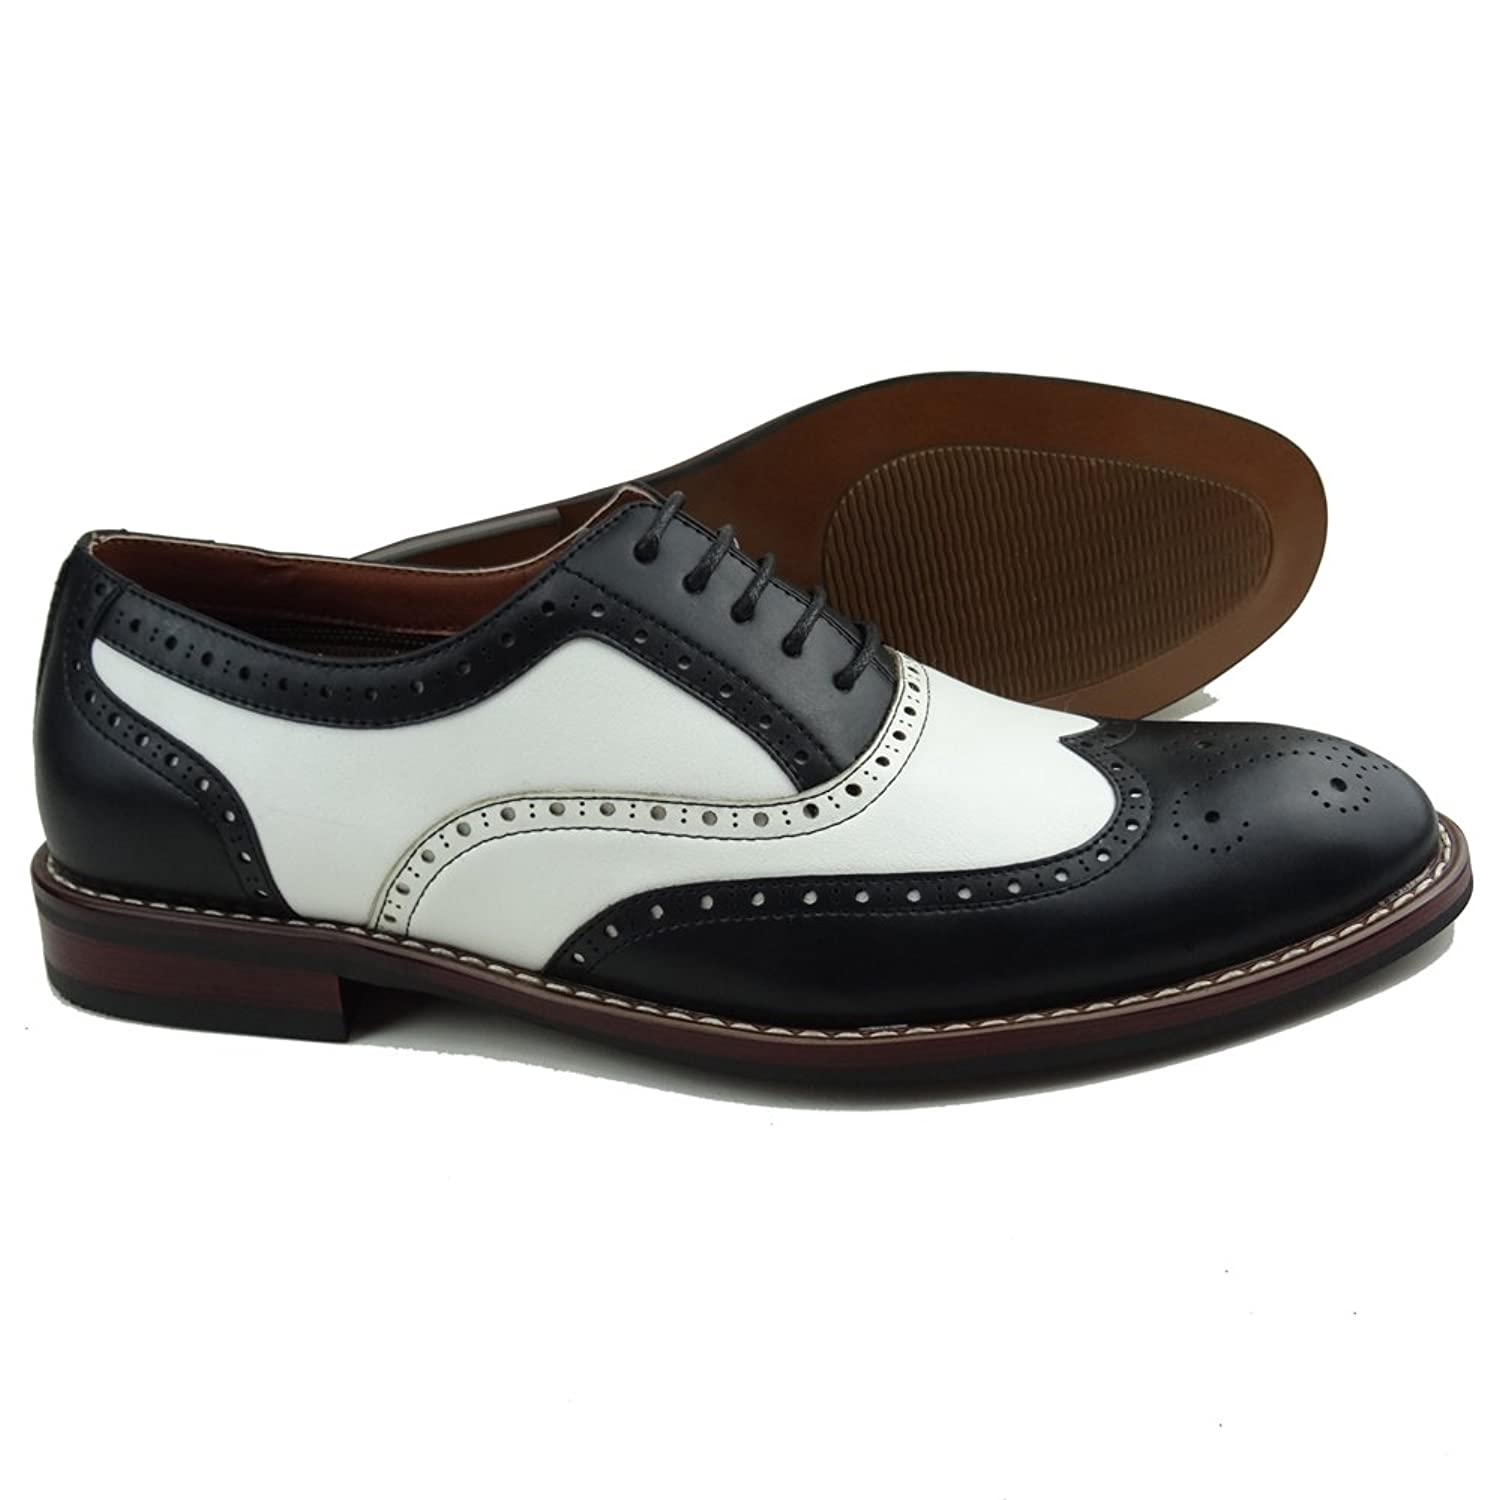 1960s Style Men's Clothing, 70s Men's Fashion  Mens Black White Lace Up Wing Tip Perforated Oxford Dress Shoes $34.99 AT vintagedancer.com